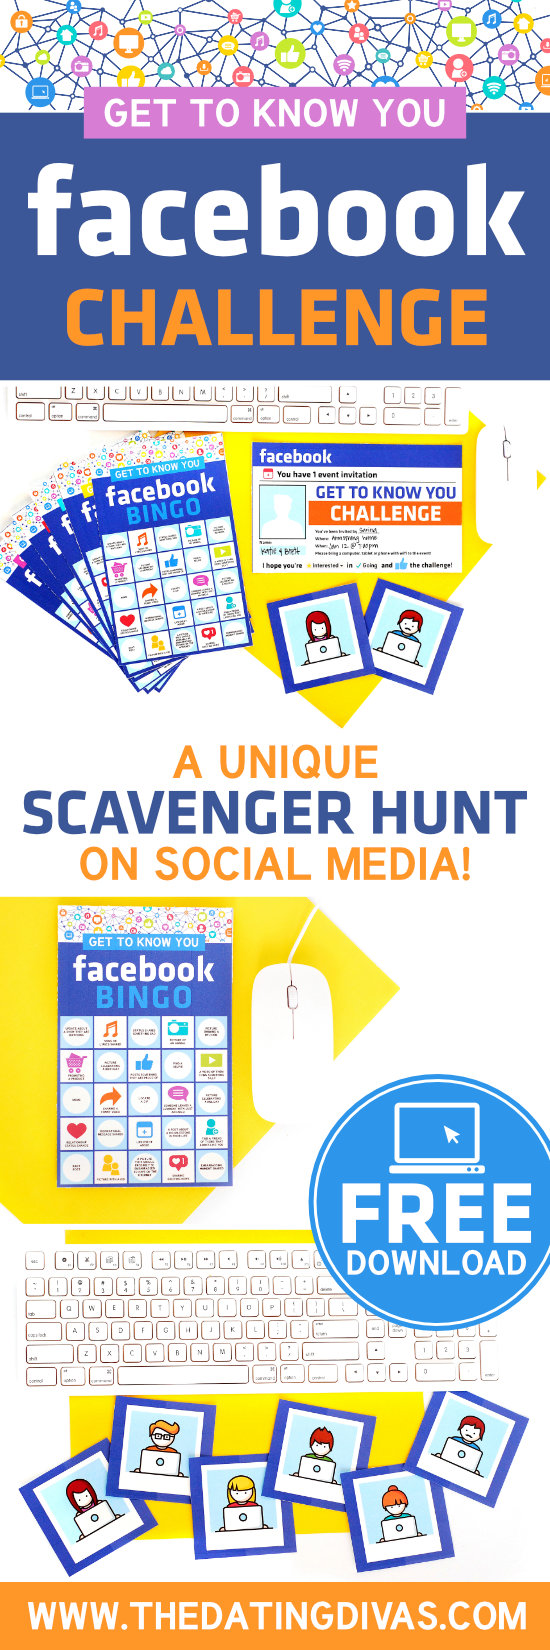 Facebook Scavenger Hunt Get to Know You Game #groupdate #icebreakergame #partygame